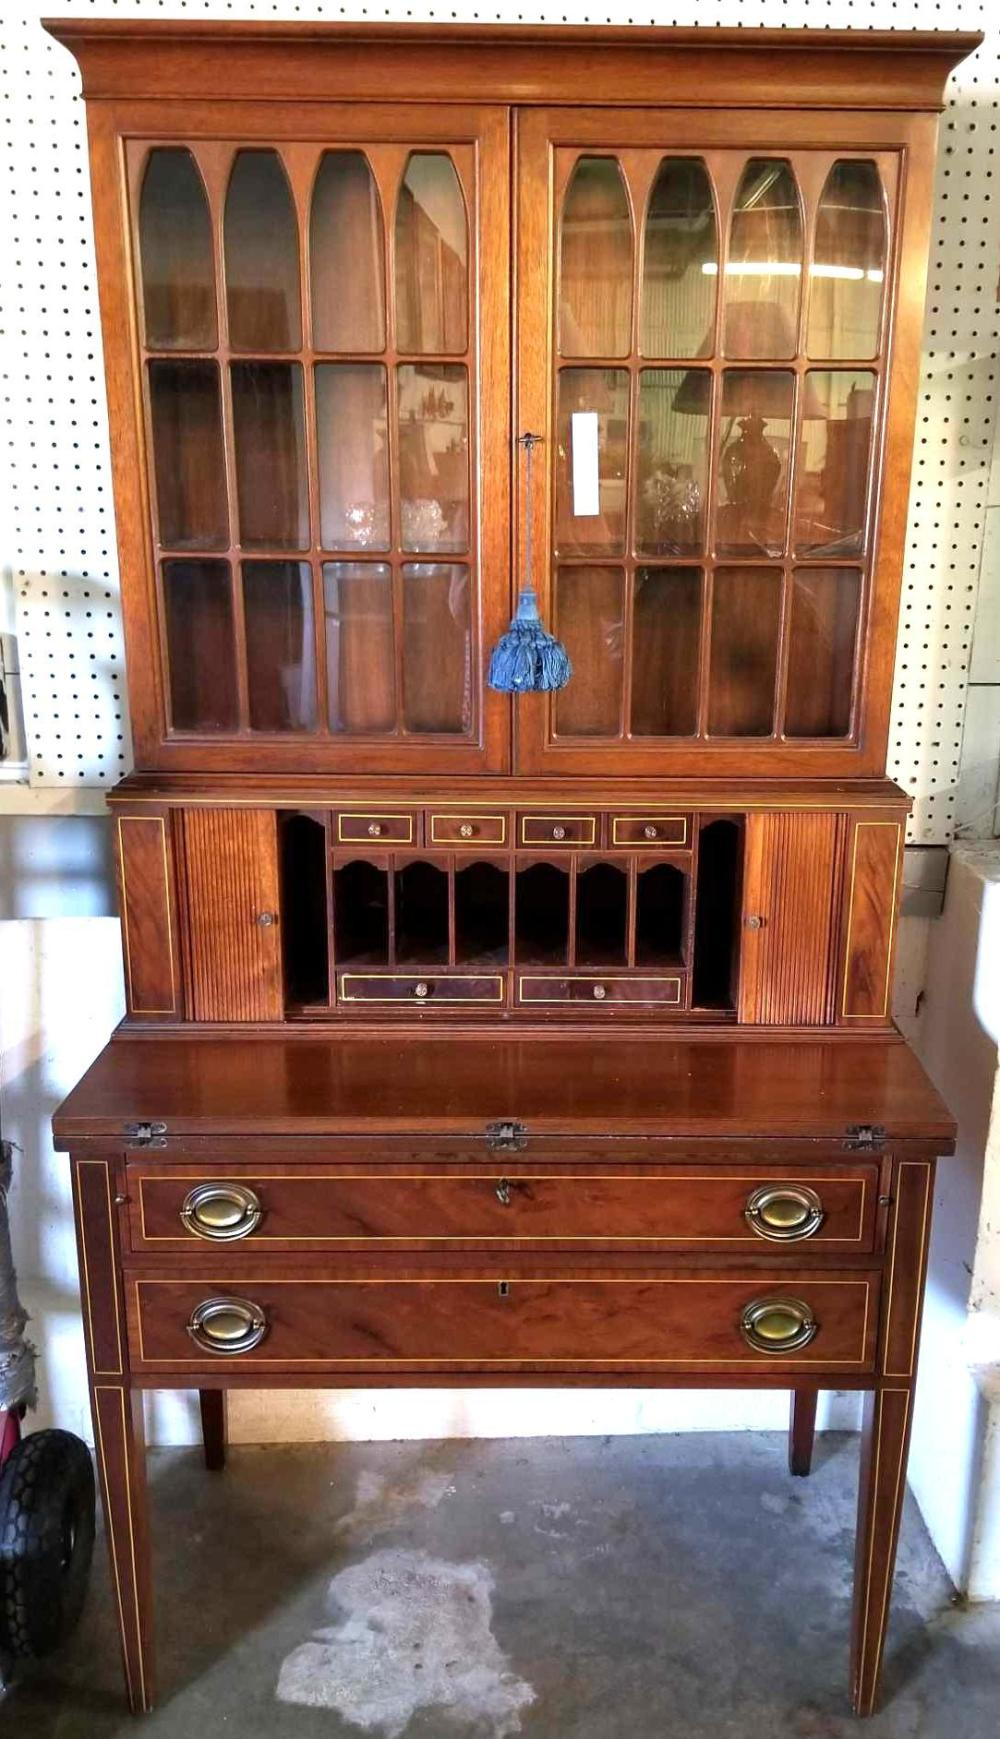 MADDOX FURNITURE CO. SHERATON STYLE LADIES DESK W/ CHINA CABINET TOP